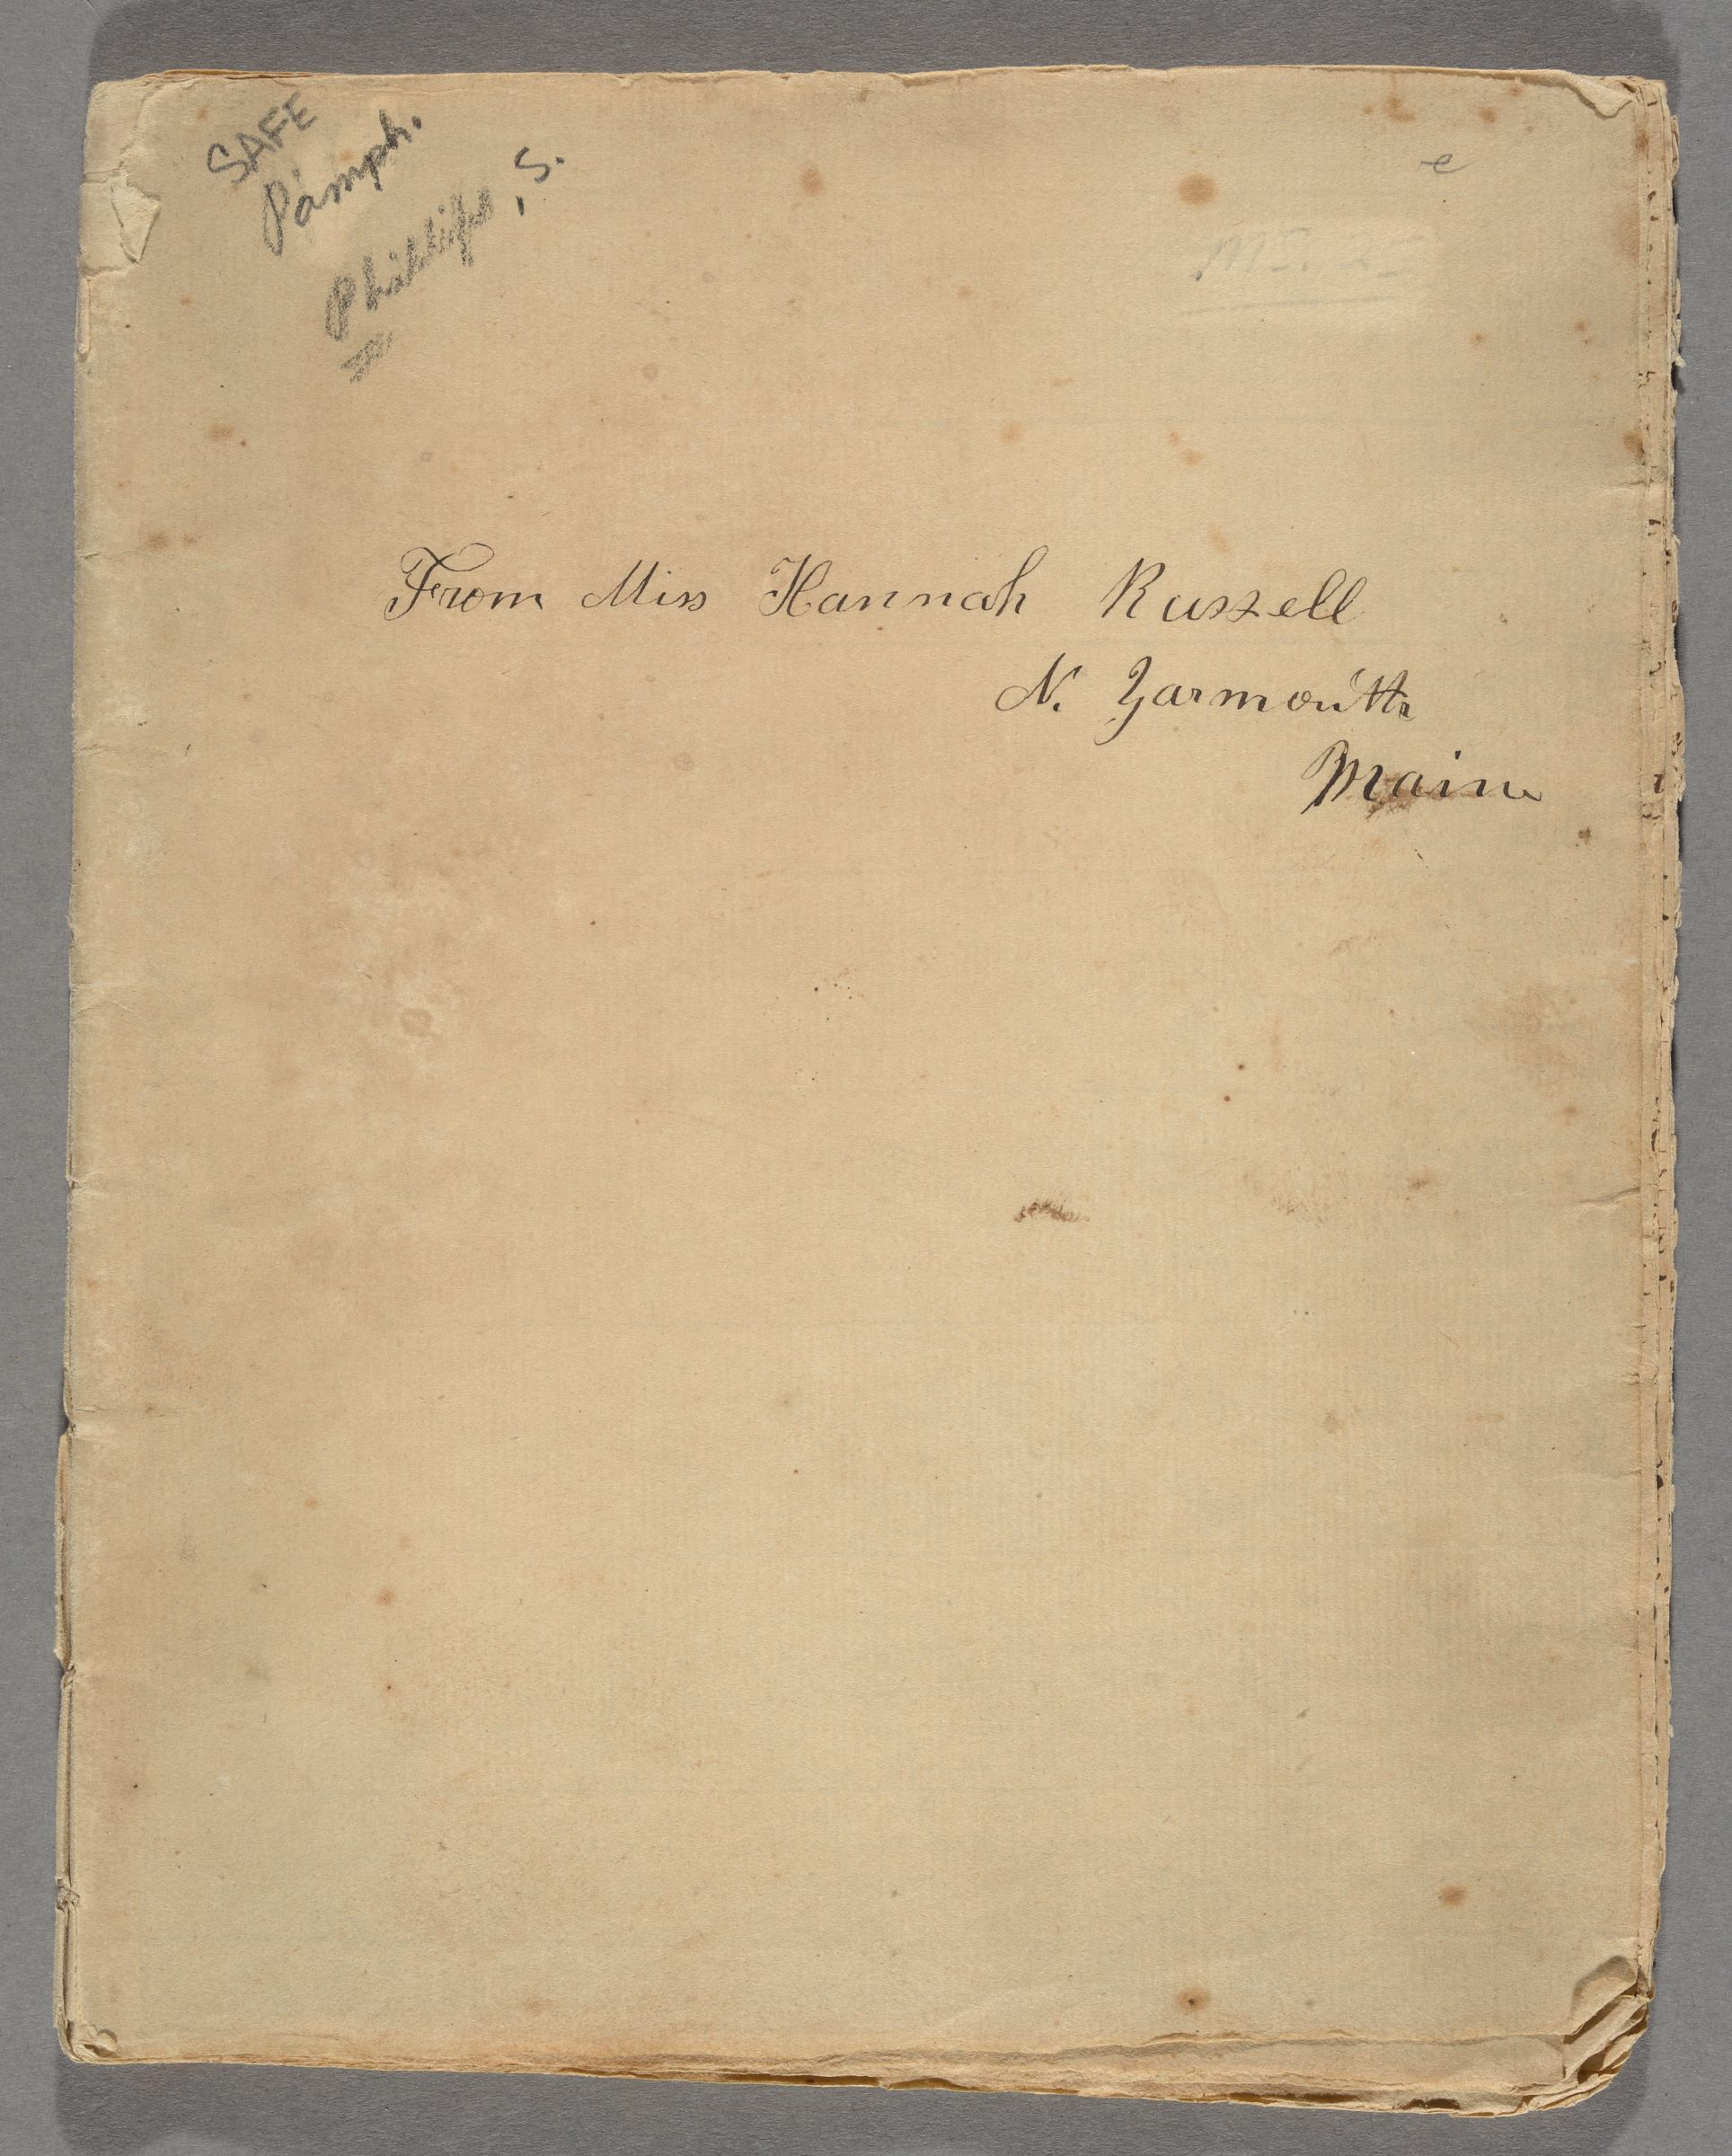 This forty-nine page theological letter was written by Rev. Samuel Phillips(1690-1771);Harvard AB 1708) of Andover, Massachusetts, to Rev. William Balch (1704-1792; Harvard AB 1724) of Bradford, Massachusetts, on February 12, 1744.